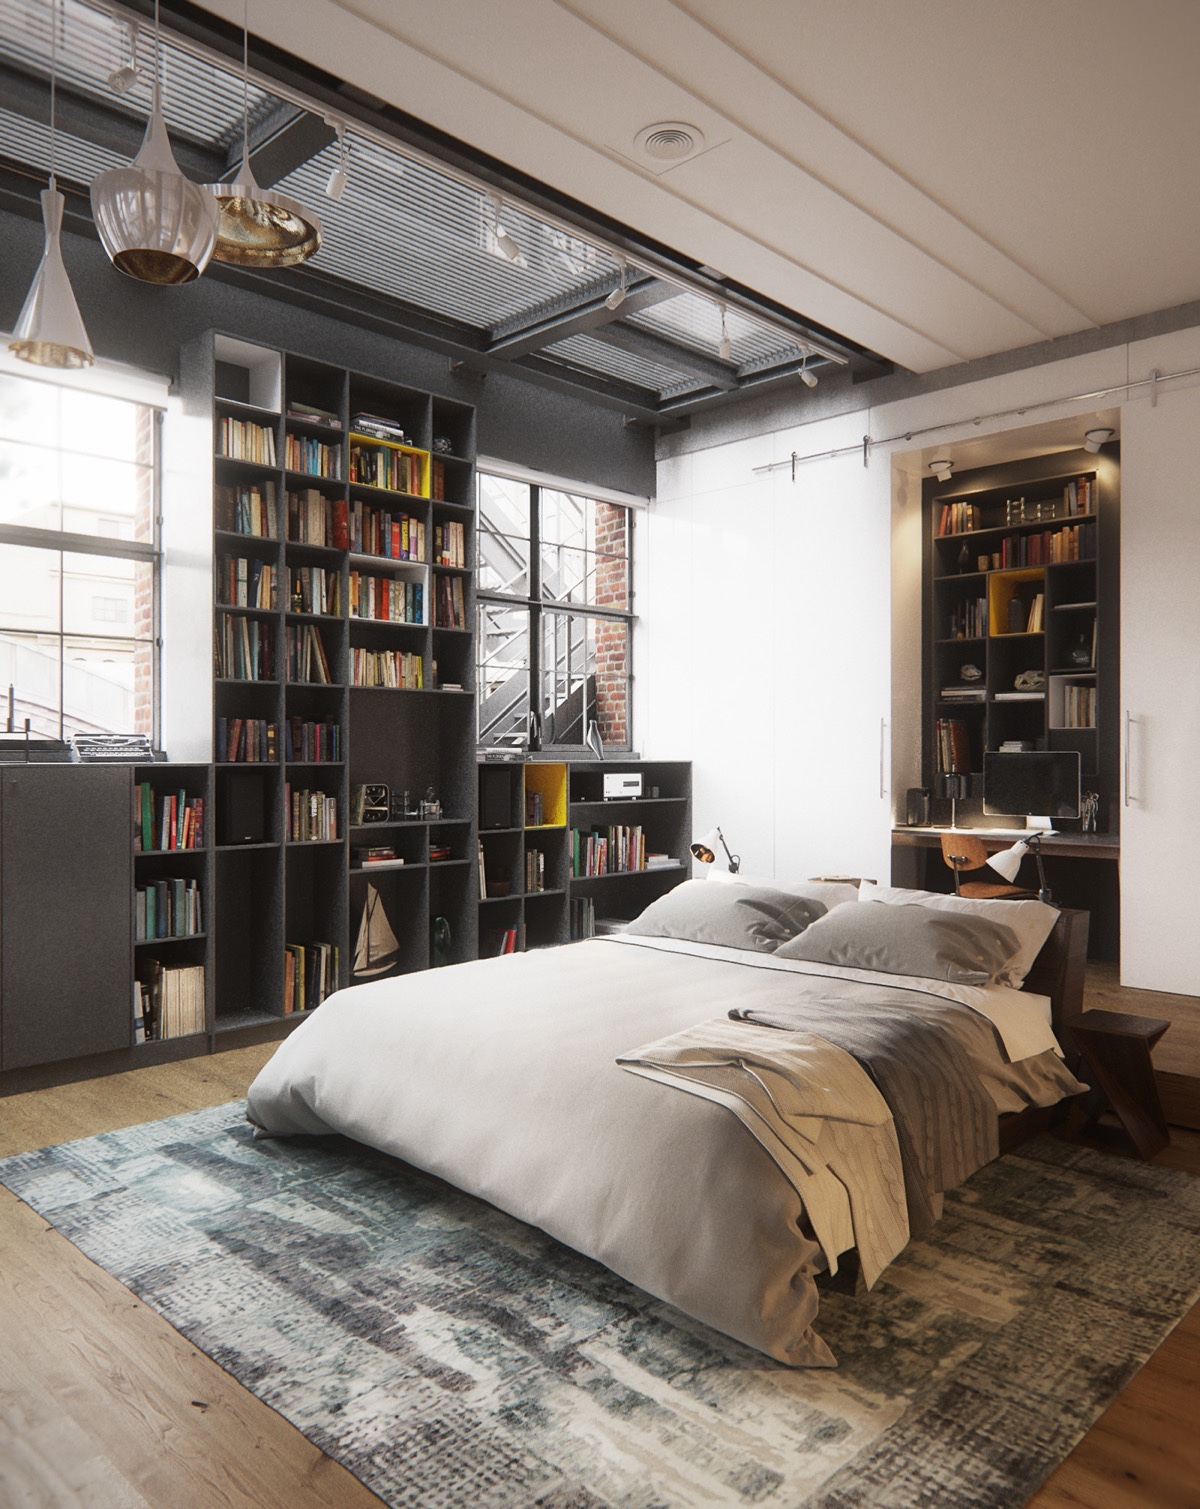 Home Designing Industrial Style Bedroom Design The Essential Guide Contemporary Designers